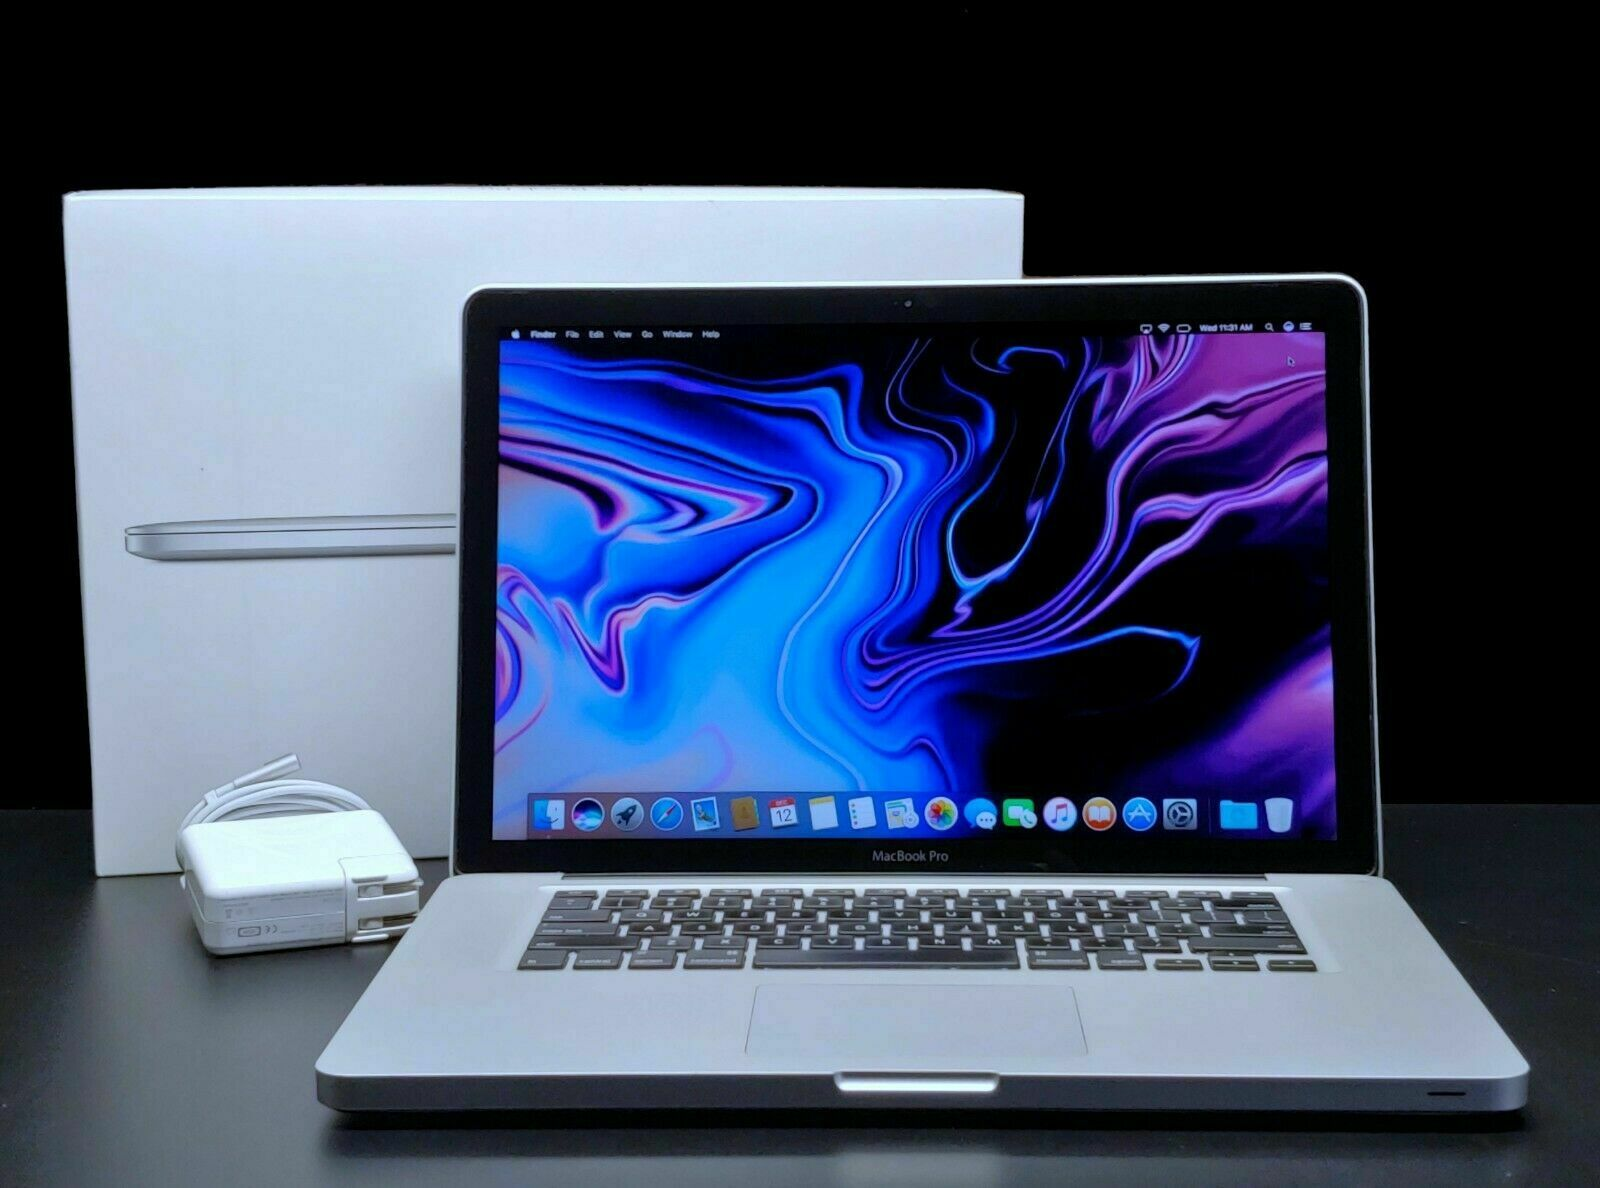 Apple MacBook Pro 15 inch Laptop | QUAD CORE i7 | 16GB RAM | MacOS | 1TB SSD!. Buy it now for 699.00